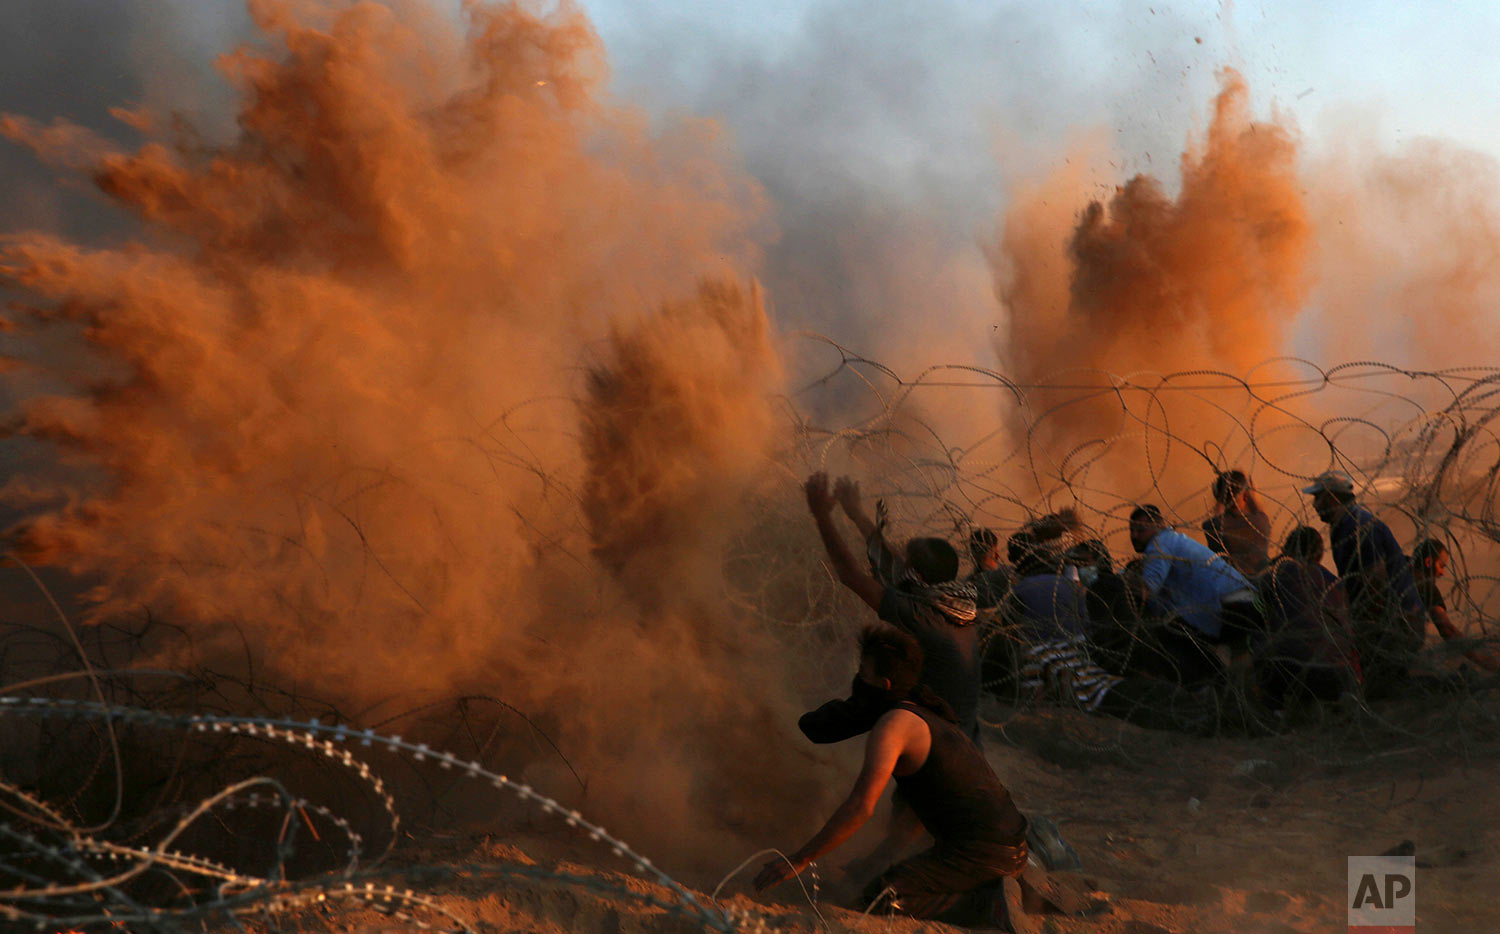 Protesters spread sand in the air while others burn tires near the fence of the Gaza Strip border with Israel during a protest east of Khan Younis, southern Gaza Strip, Oct. 12, 2018. (AP Photo/Adel Hana)